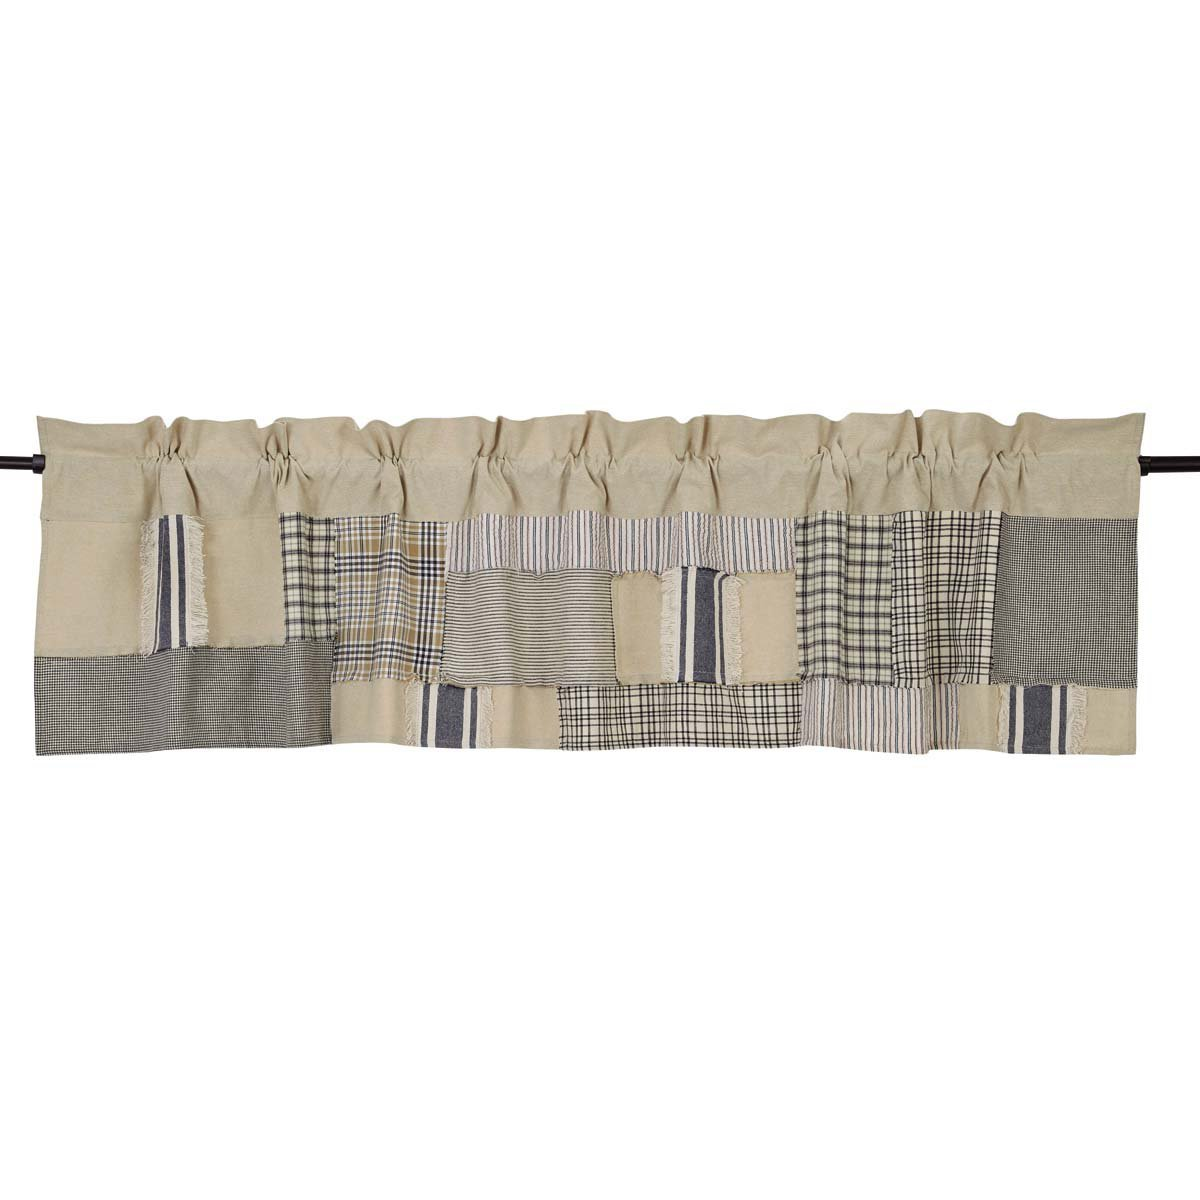 Piper Classics Mill Creek Patch Valance, 16 x 72, Farmhouse Style